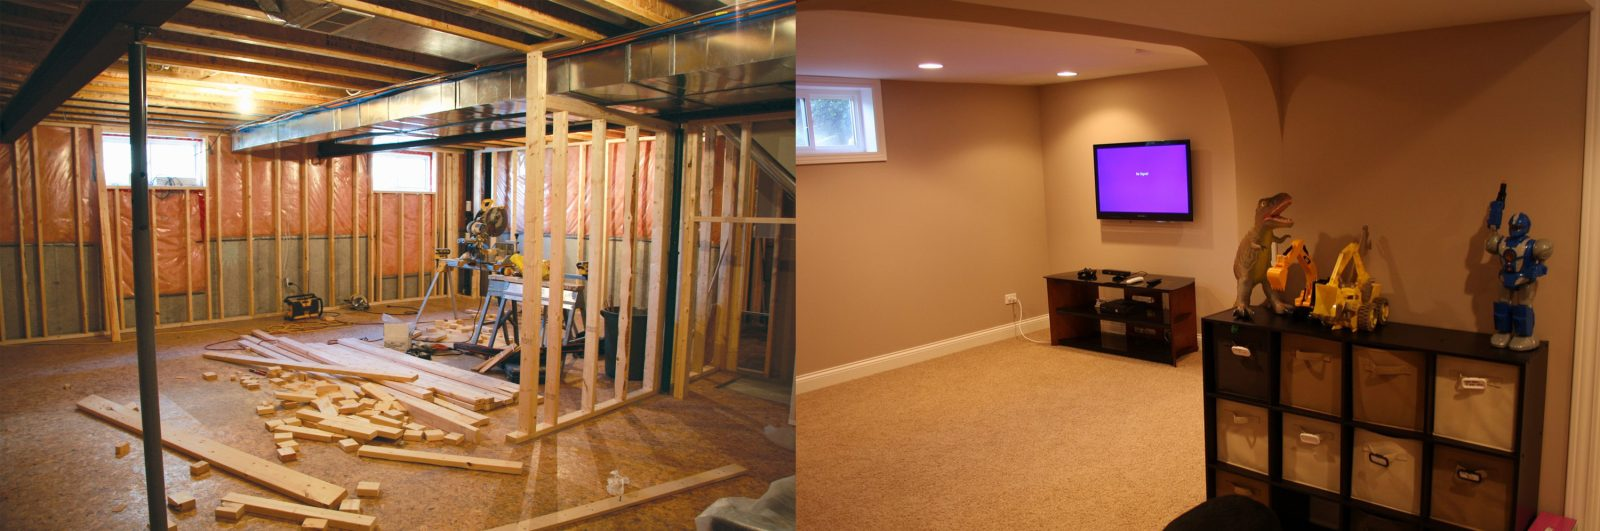 Chicago Basement Remodeling befor and after  basement remodeling  basement remodeling